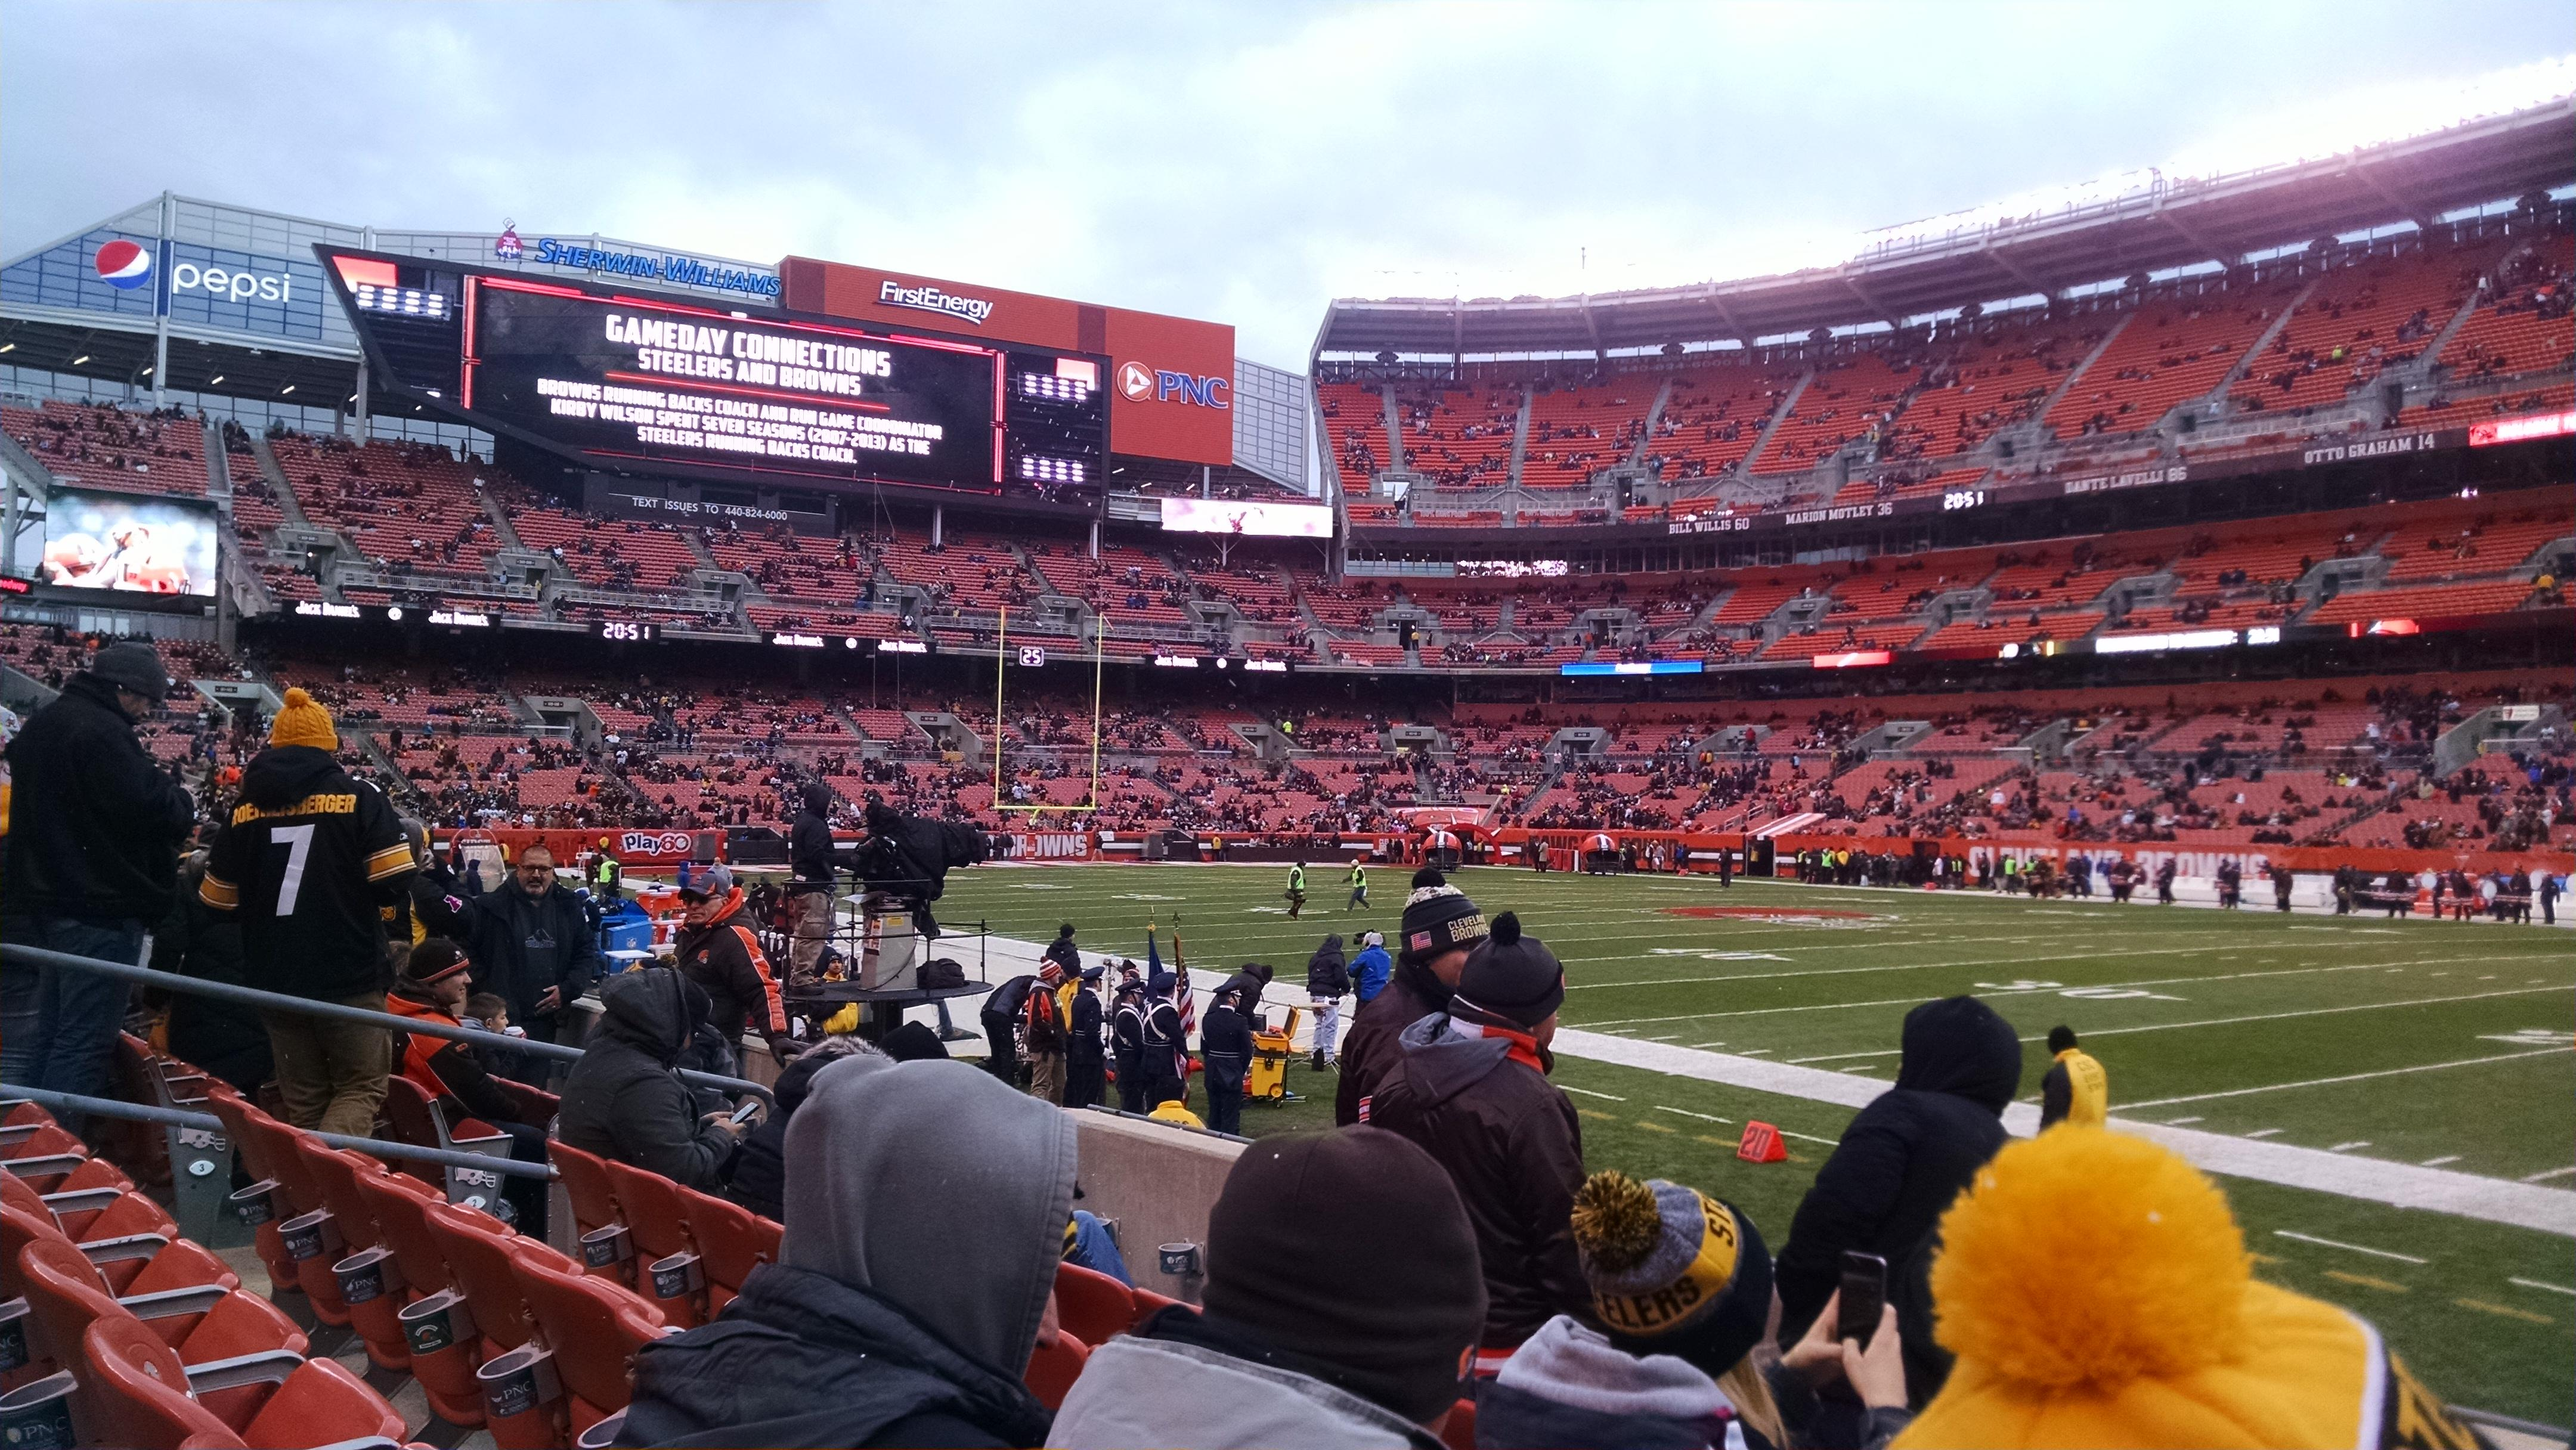 FirstEnergy Stadium Section 112 Row 5 Seat 12